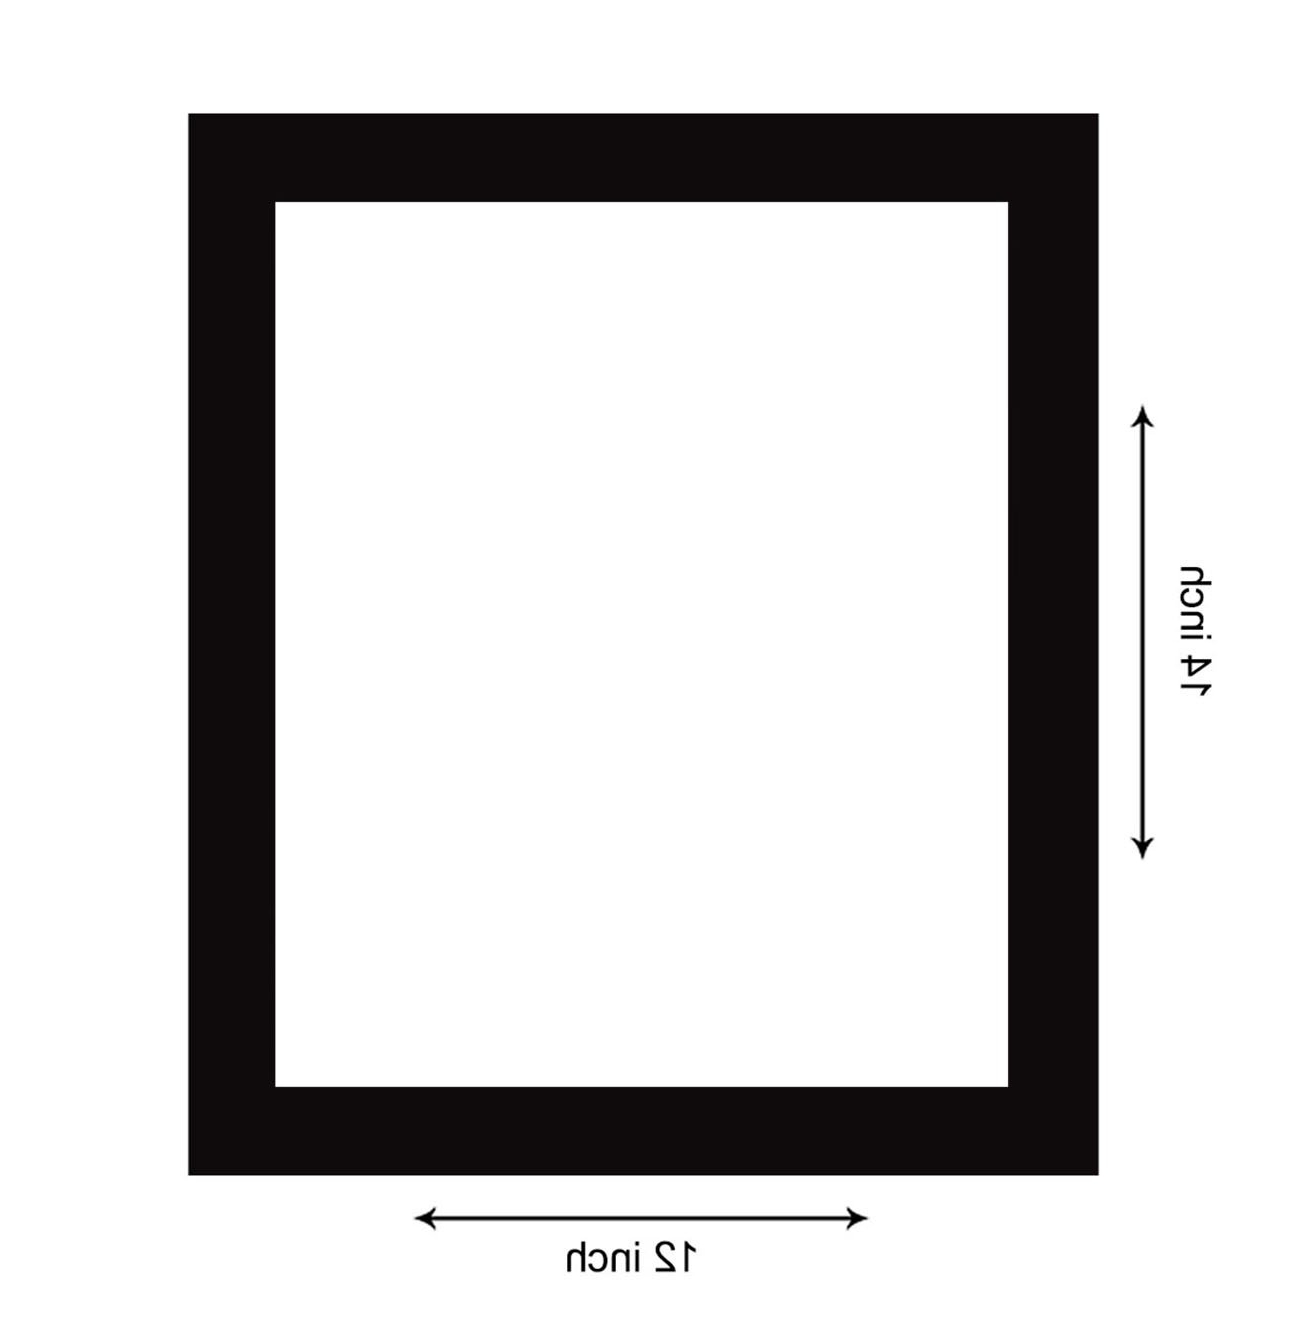 Flat Wall Mirrors Intended For Most Recently Released Art Street Flat Decorative Wall Mirror (12 X 14 Inch, Black) (View 8 of 20)